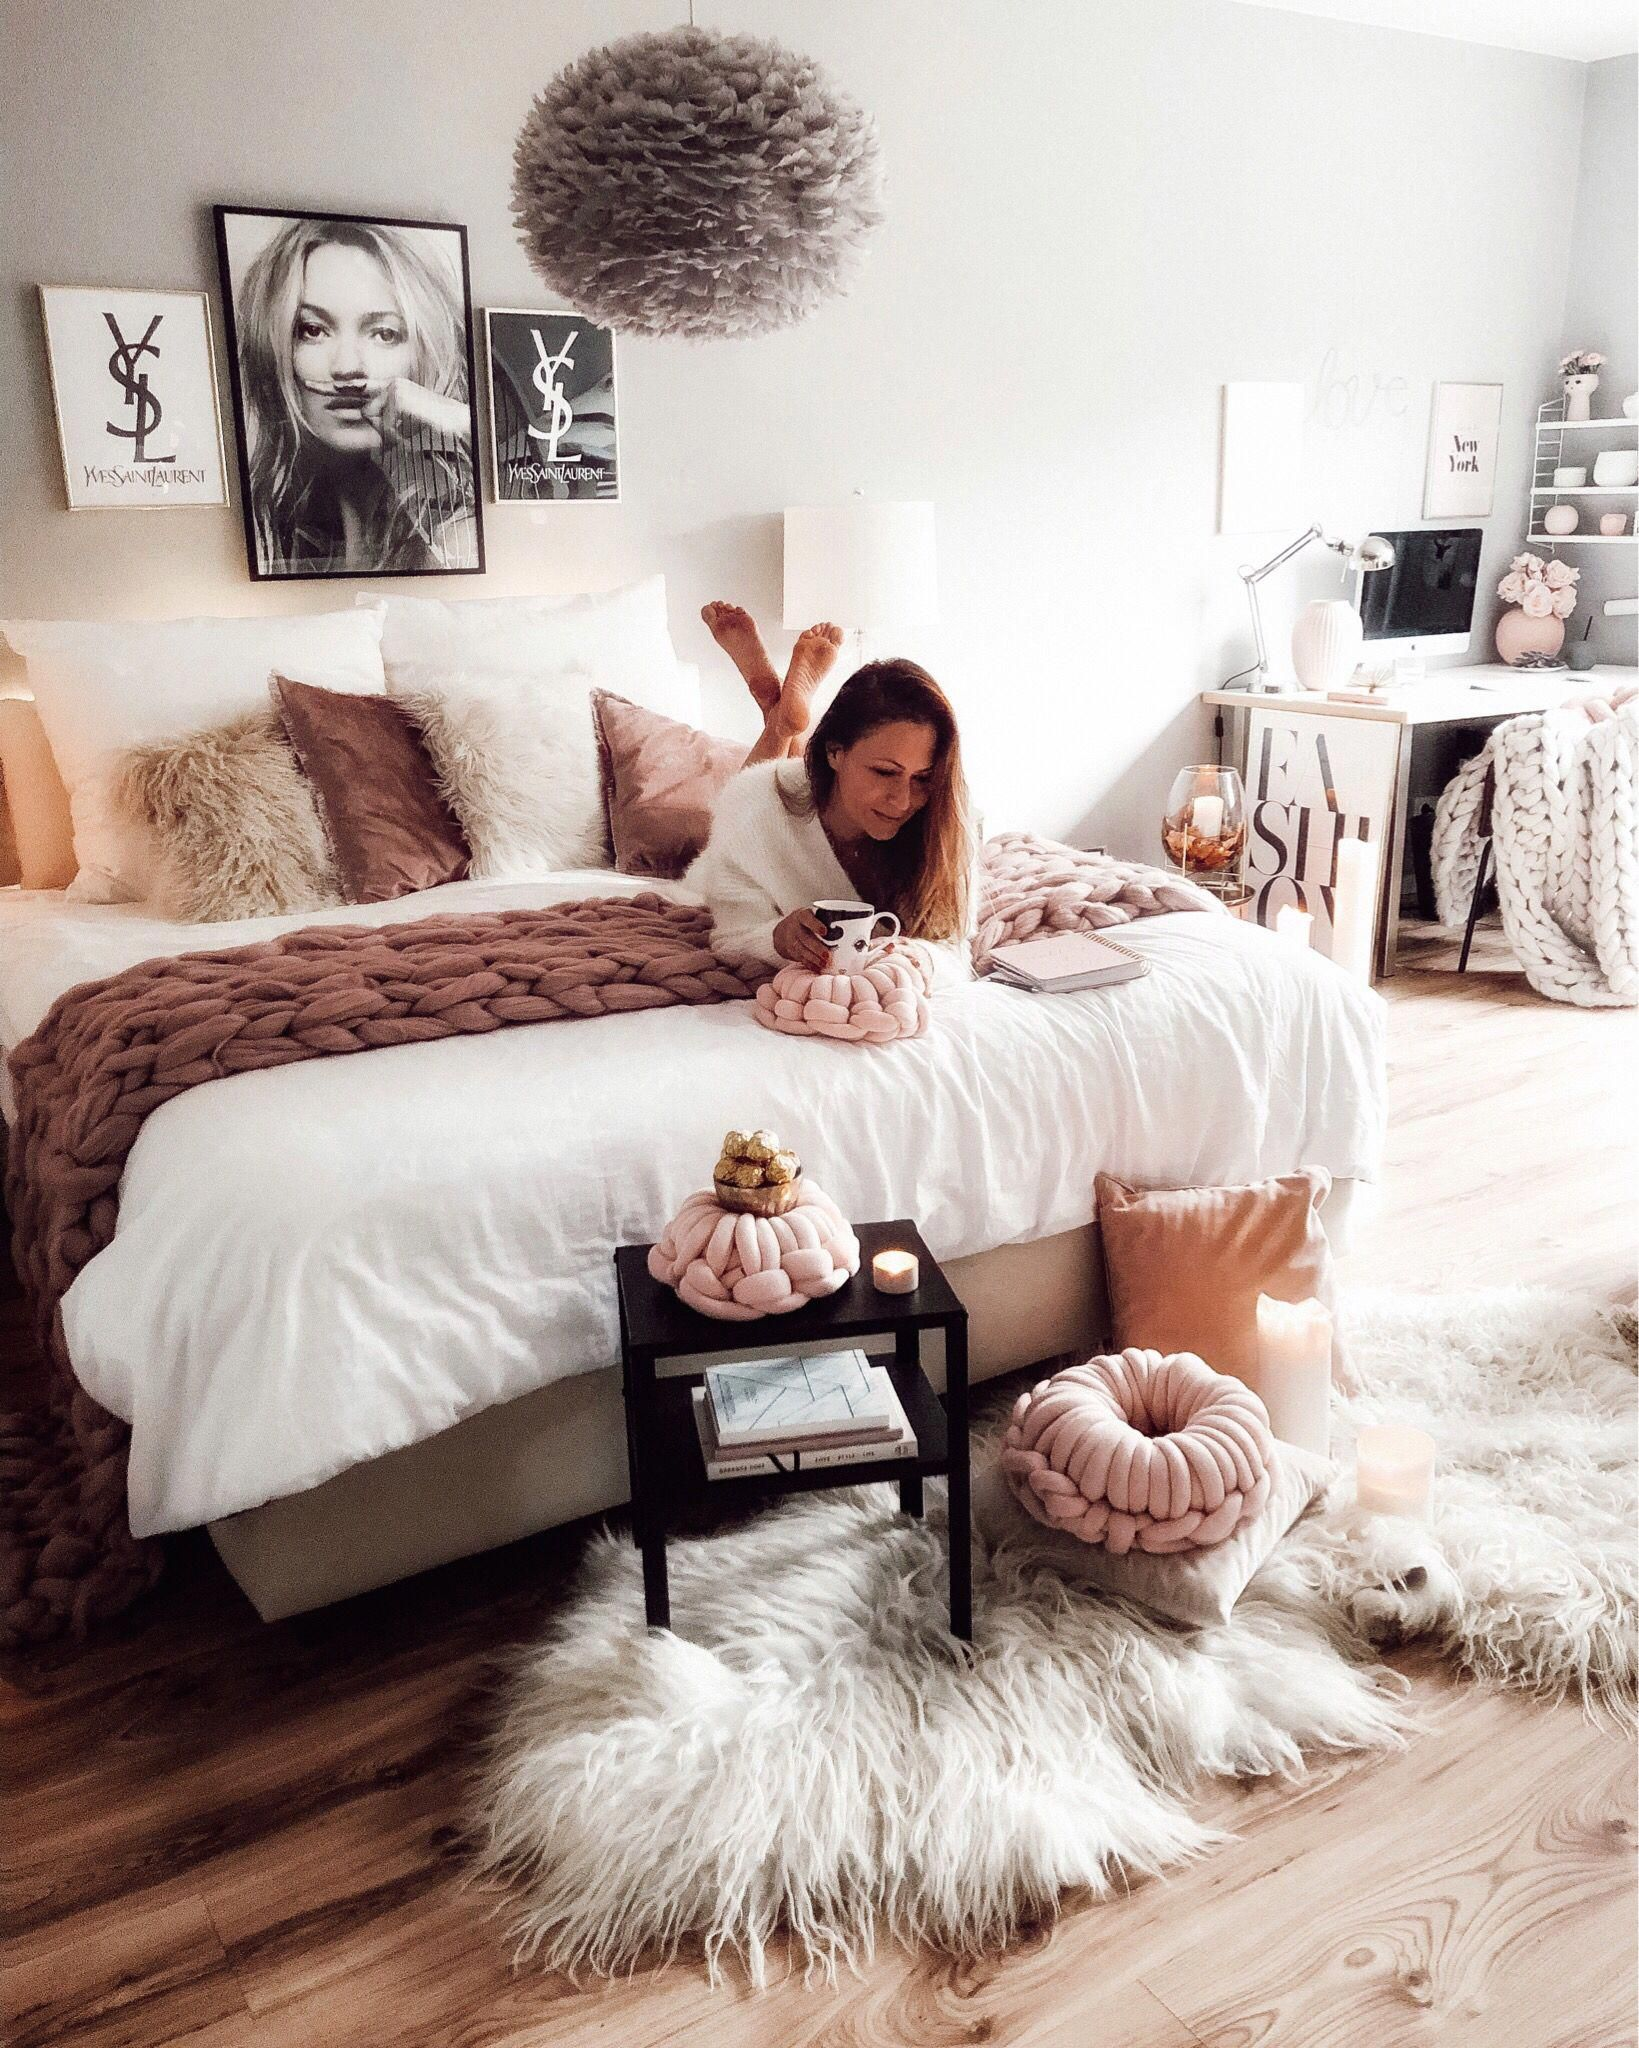 Bedroom Ideas From Cozy To Boho Really Comfortable Thoughts To Organize A Vibrant And Sensational Boho Bedroom Decor Cozy Cosy Bedroom Rustic Bedroom Design